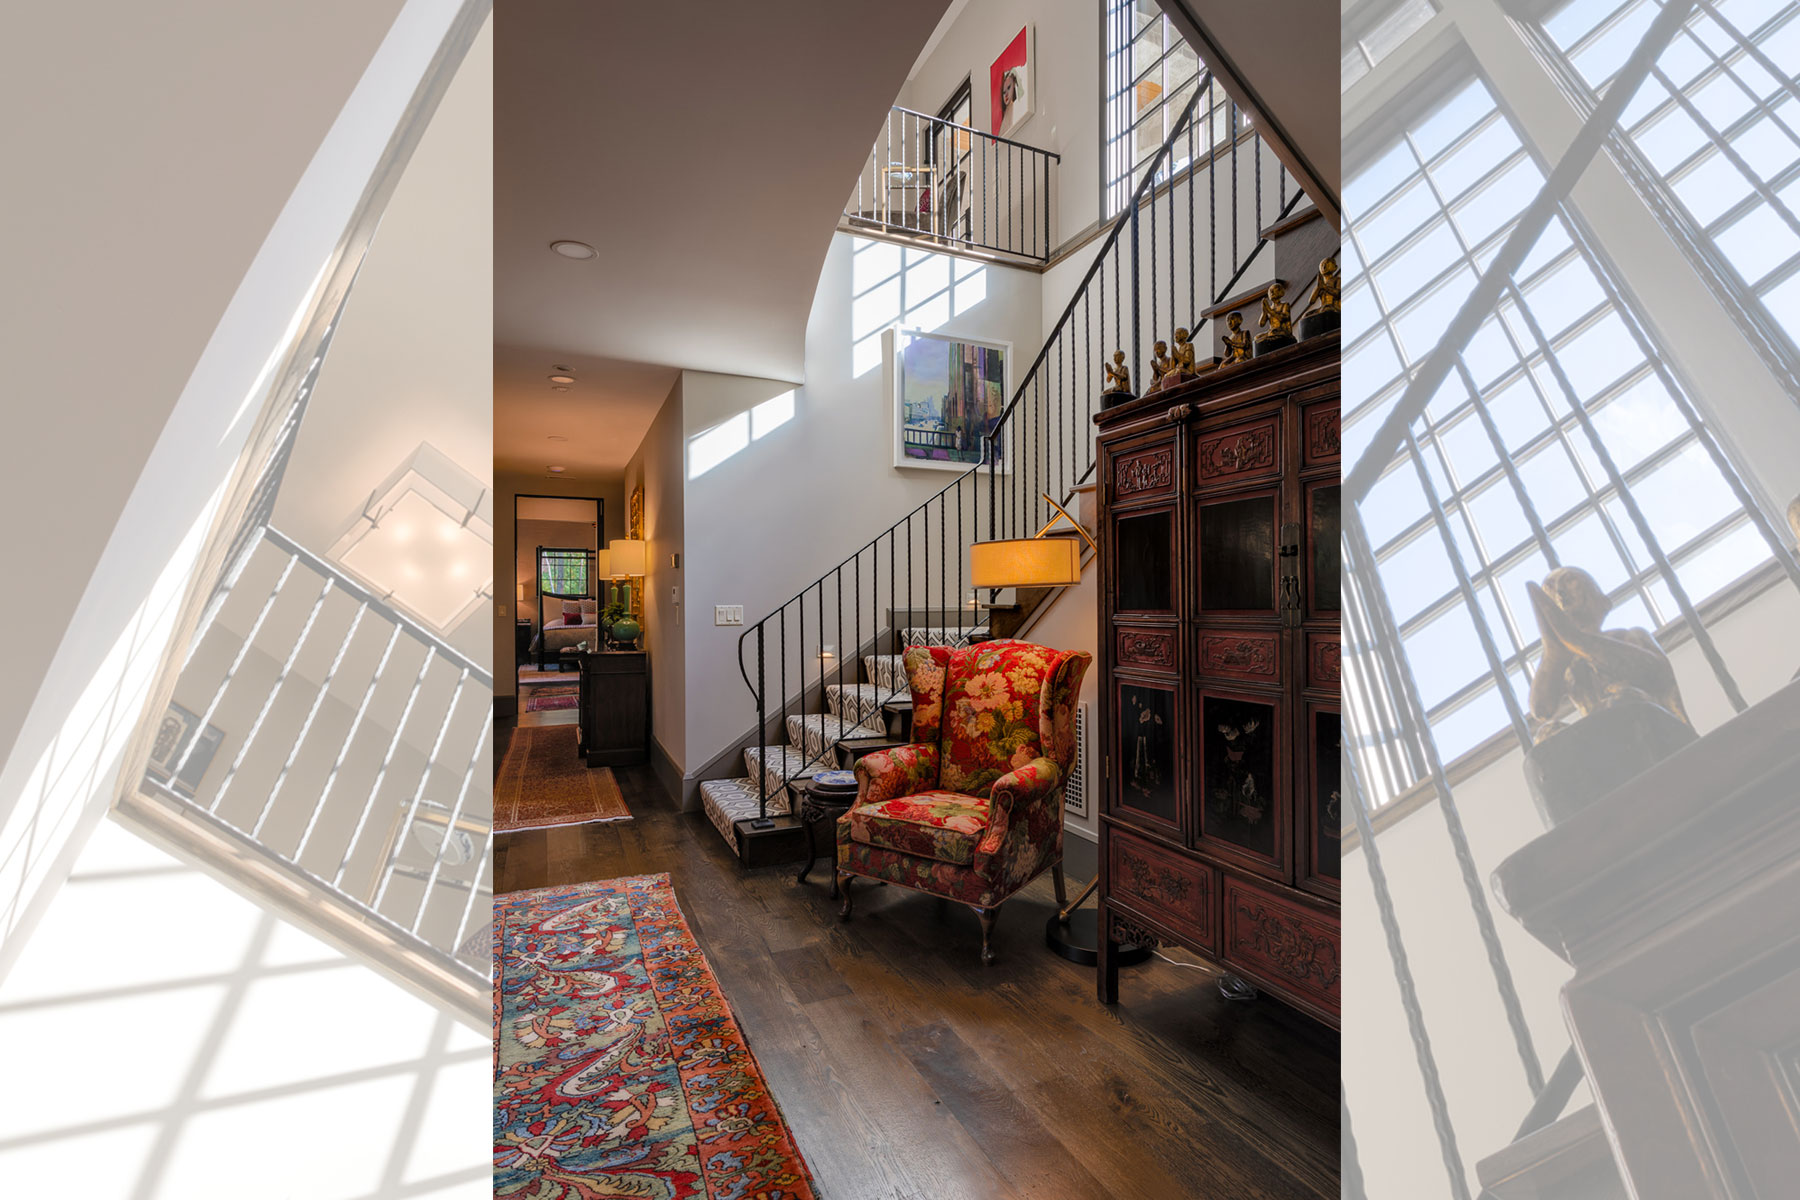 Two-story foyer with staircase to lower level